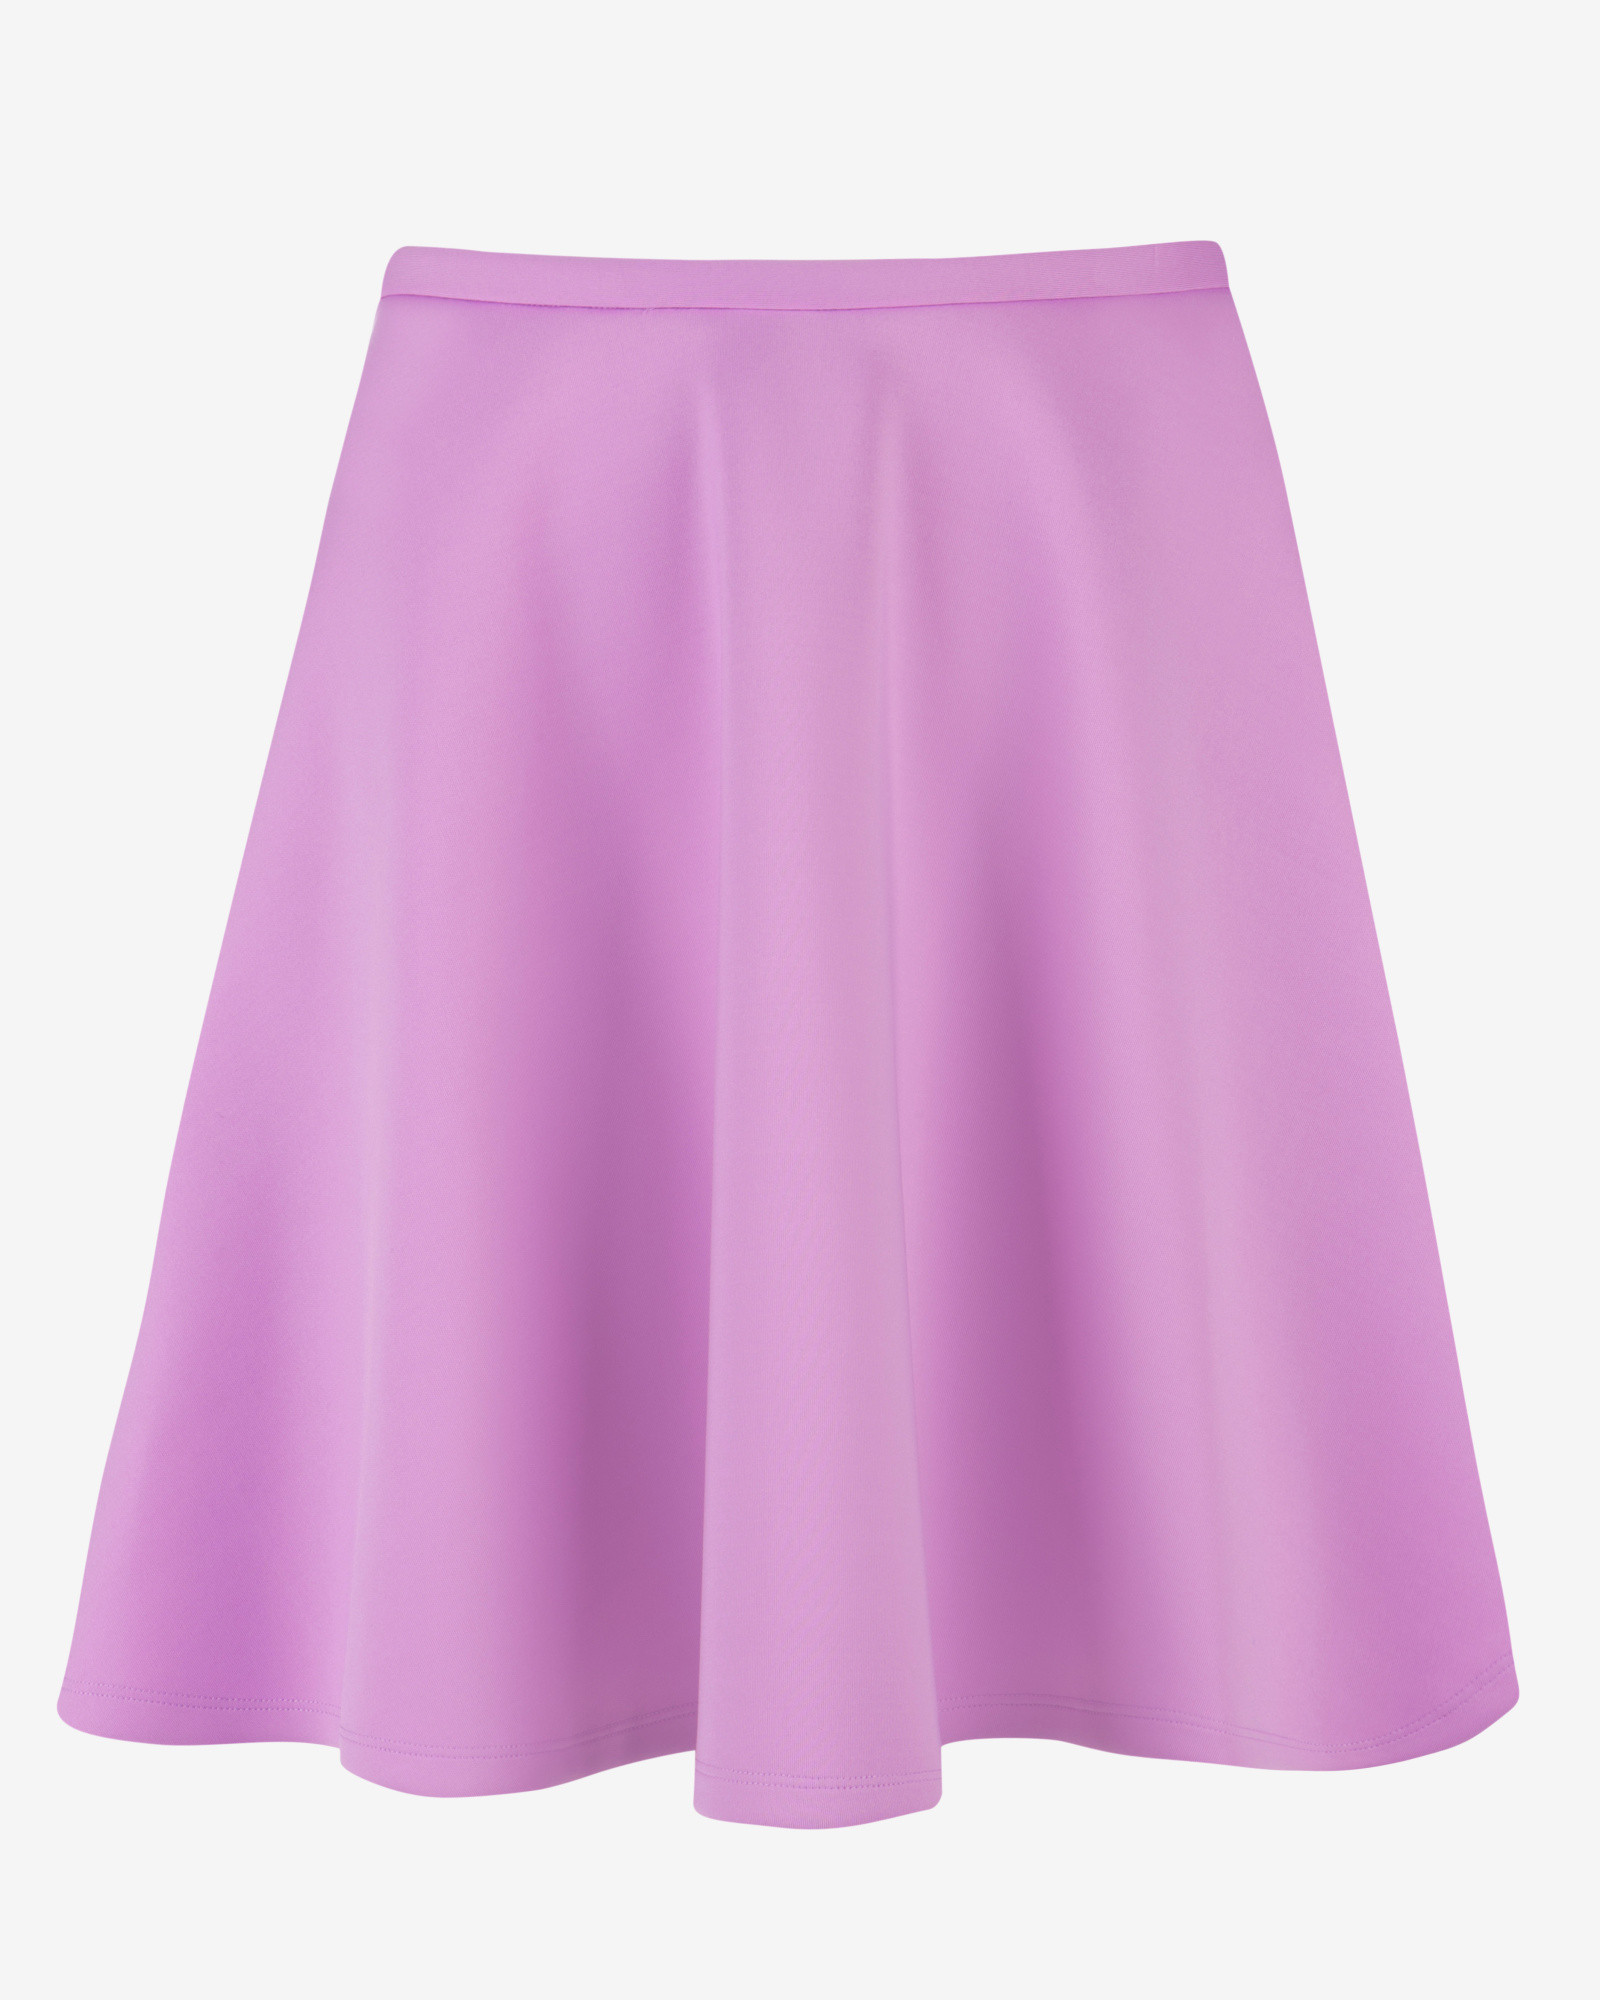 Ted baker A-line Skirt in Purple | Lyst